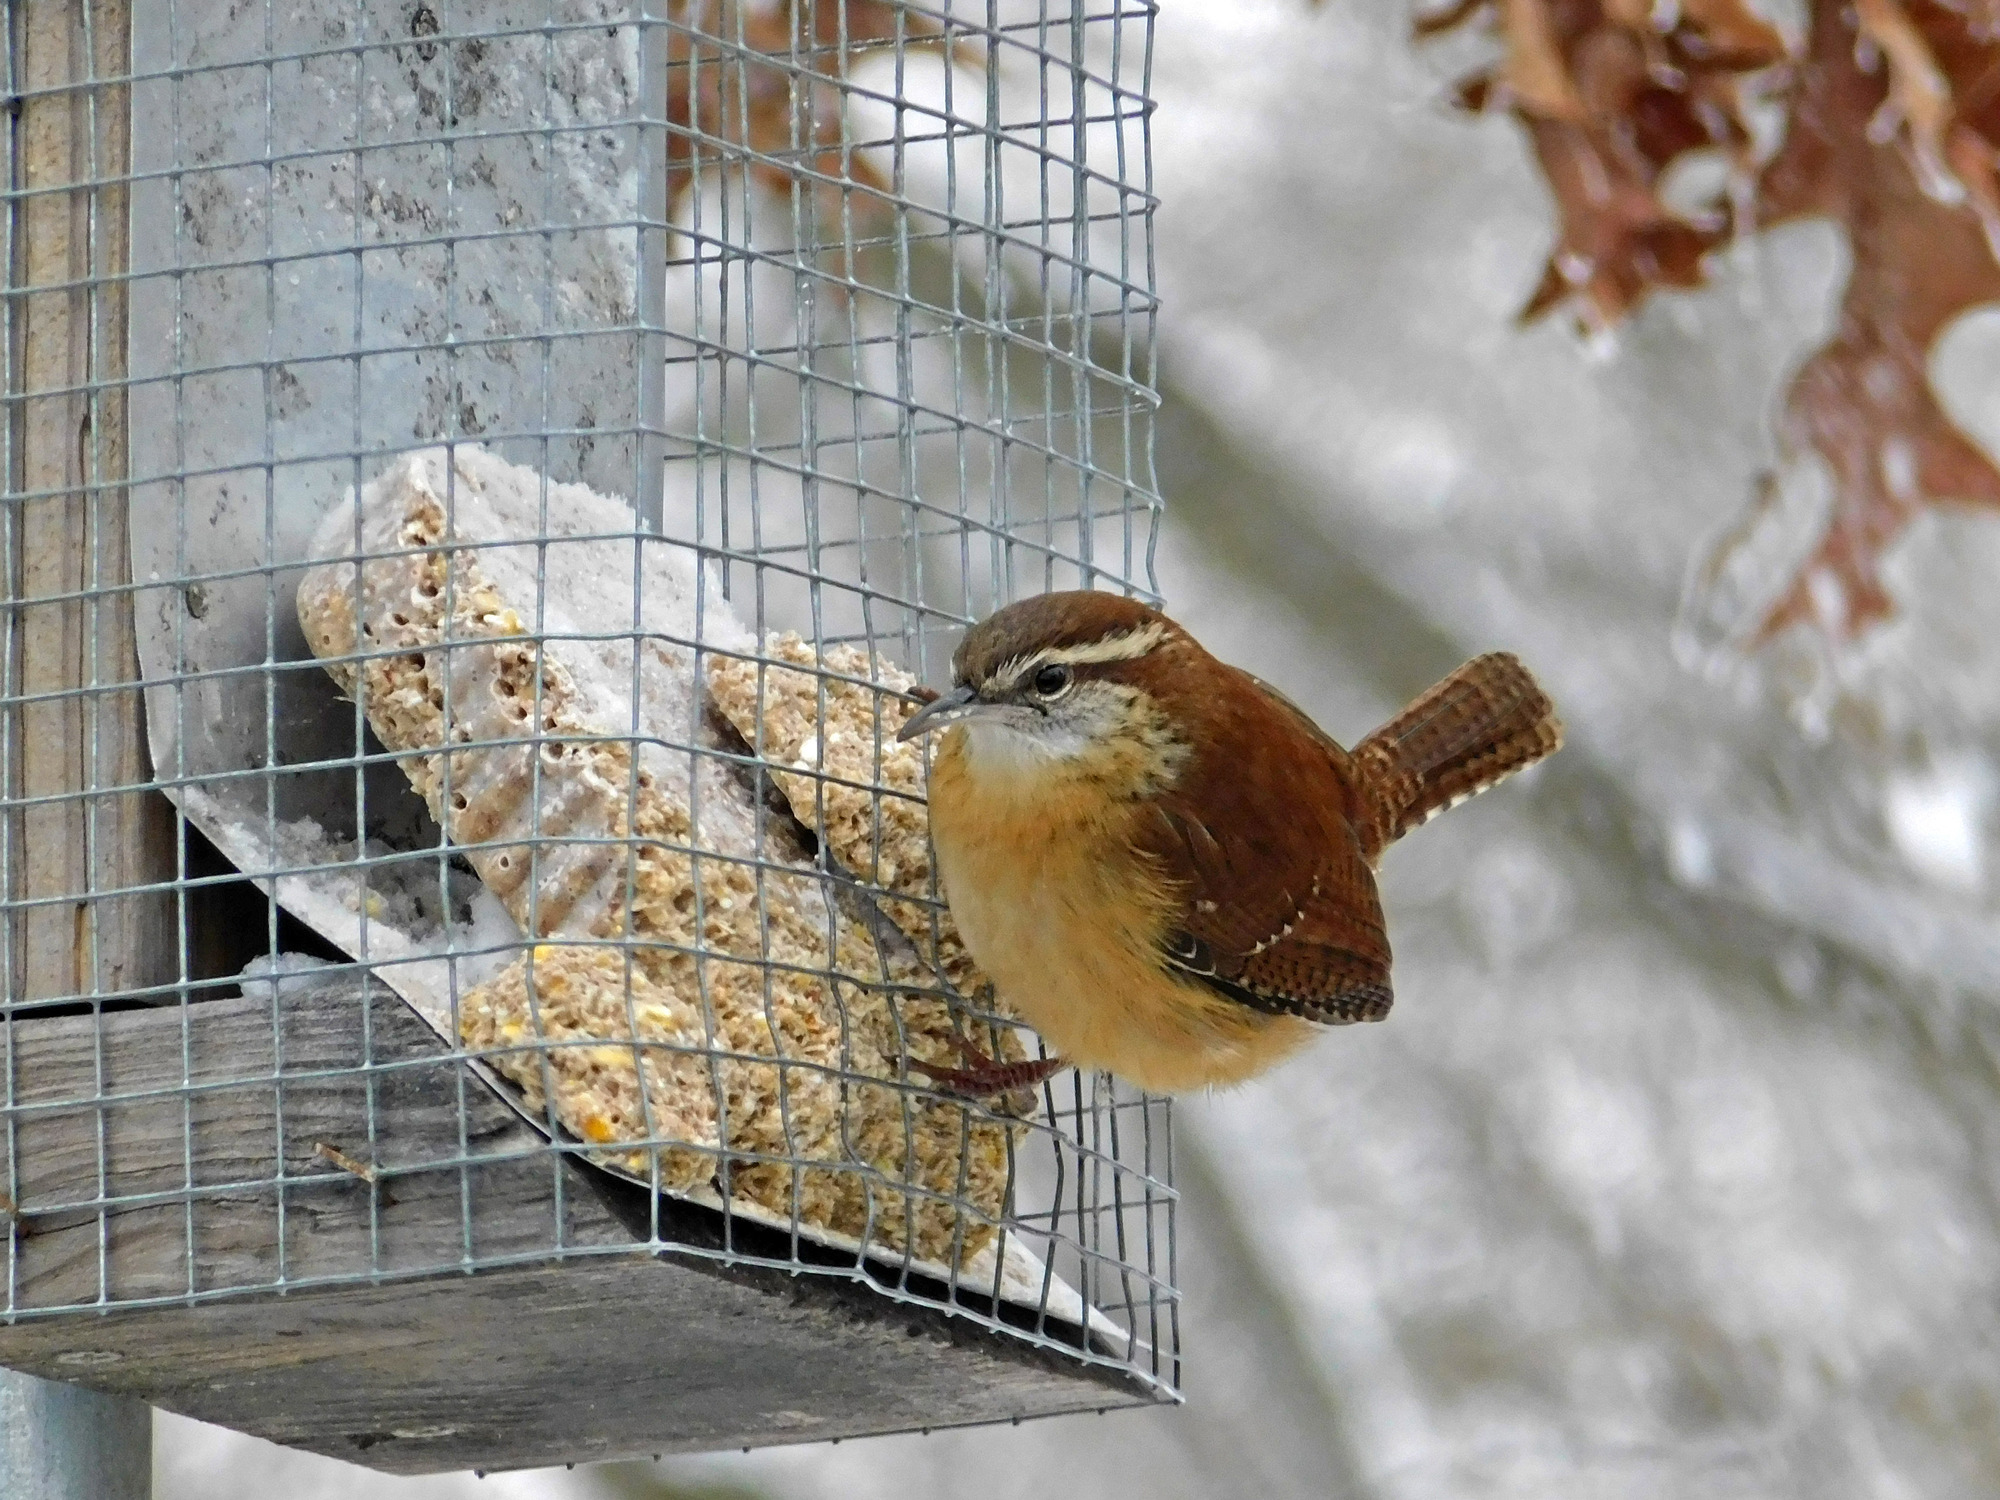 A Carolina wren tests itself against our winter.